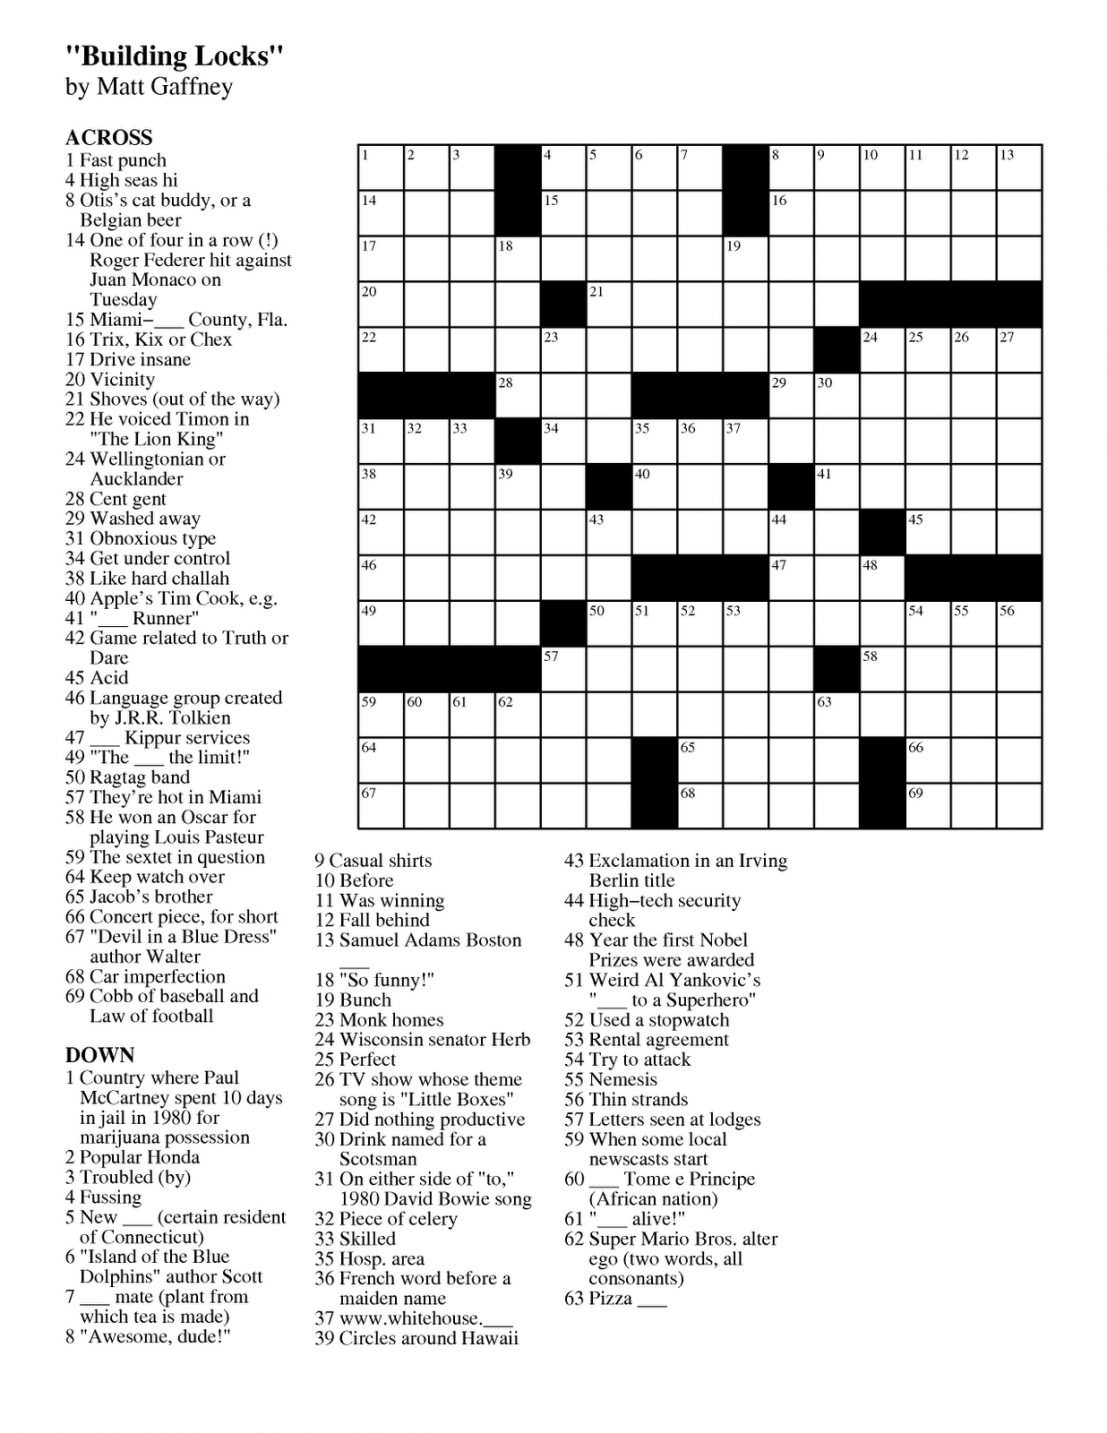 Tools Atozteacherstuff Freetable Crossword Puzzle Maker Easy - Free - Printable Puzzles Online